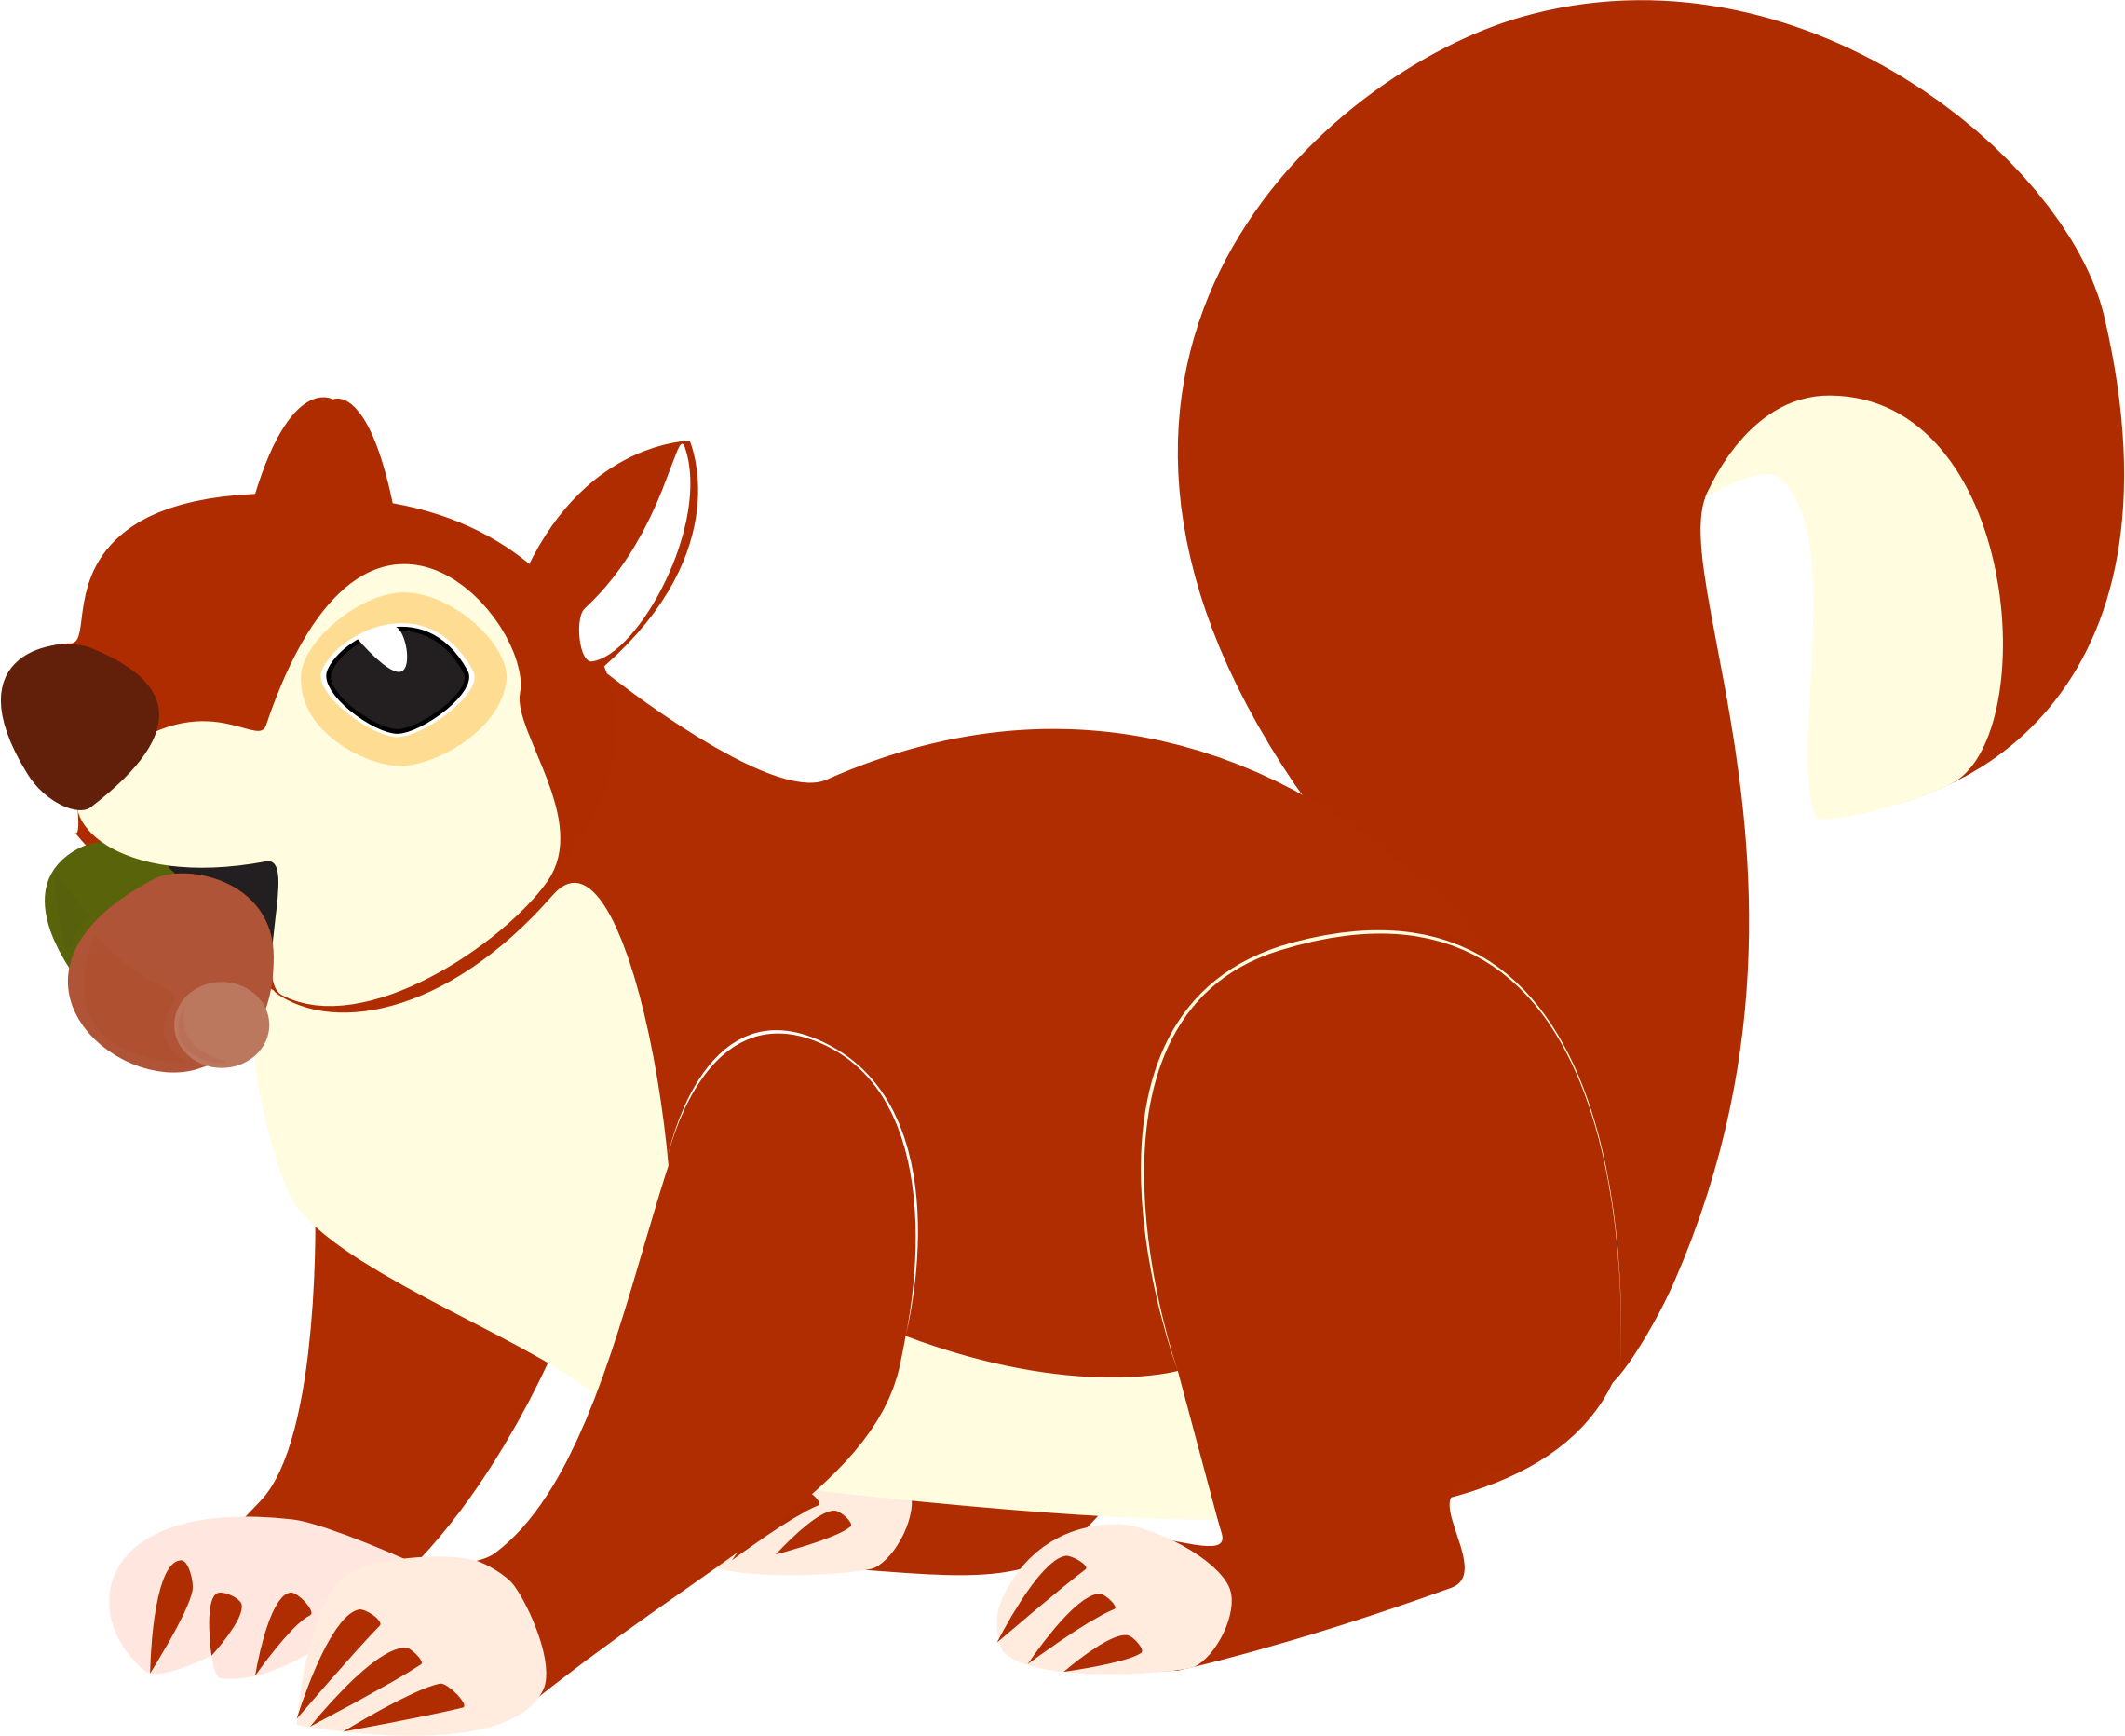 Red Squirrel clipart #16, Download drawings